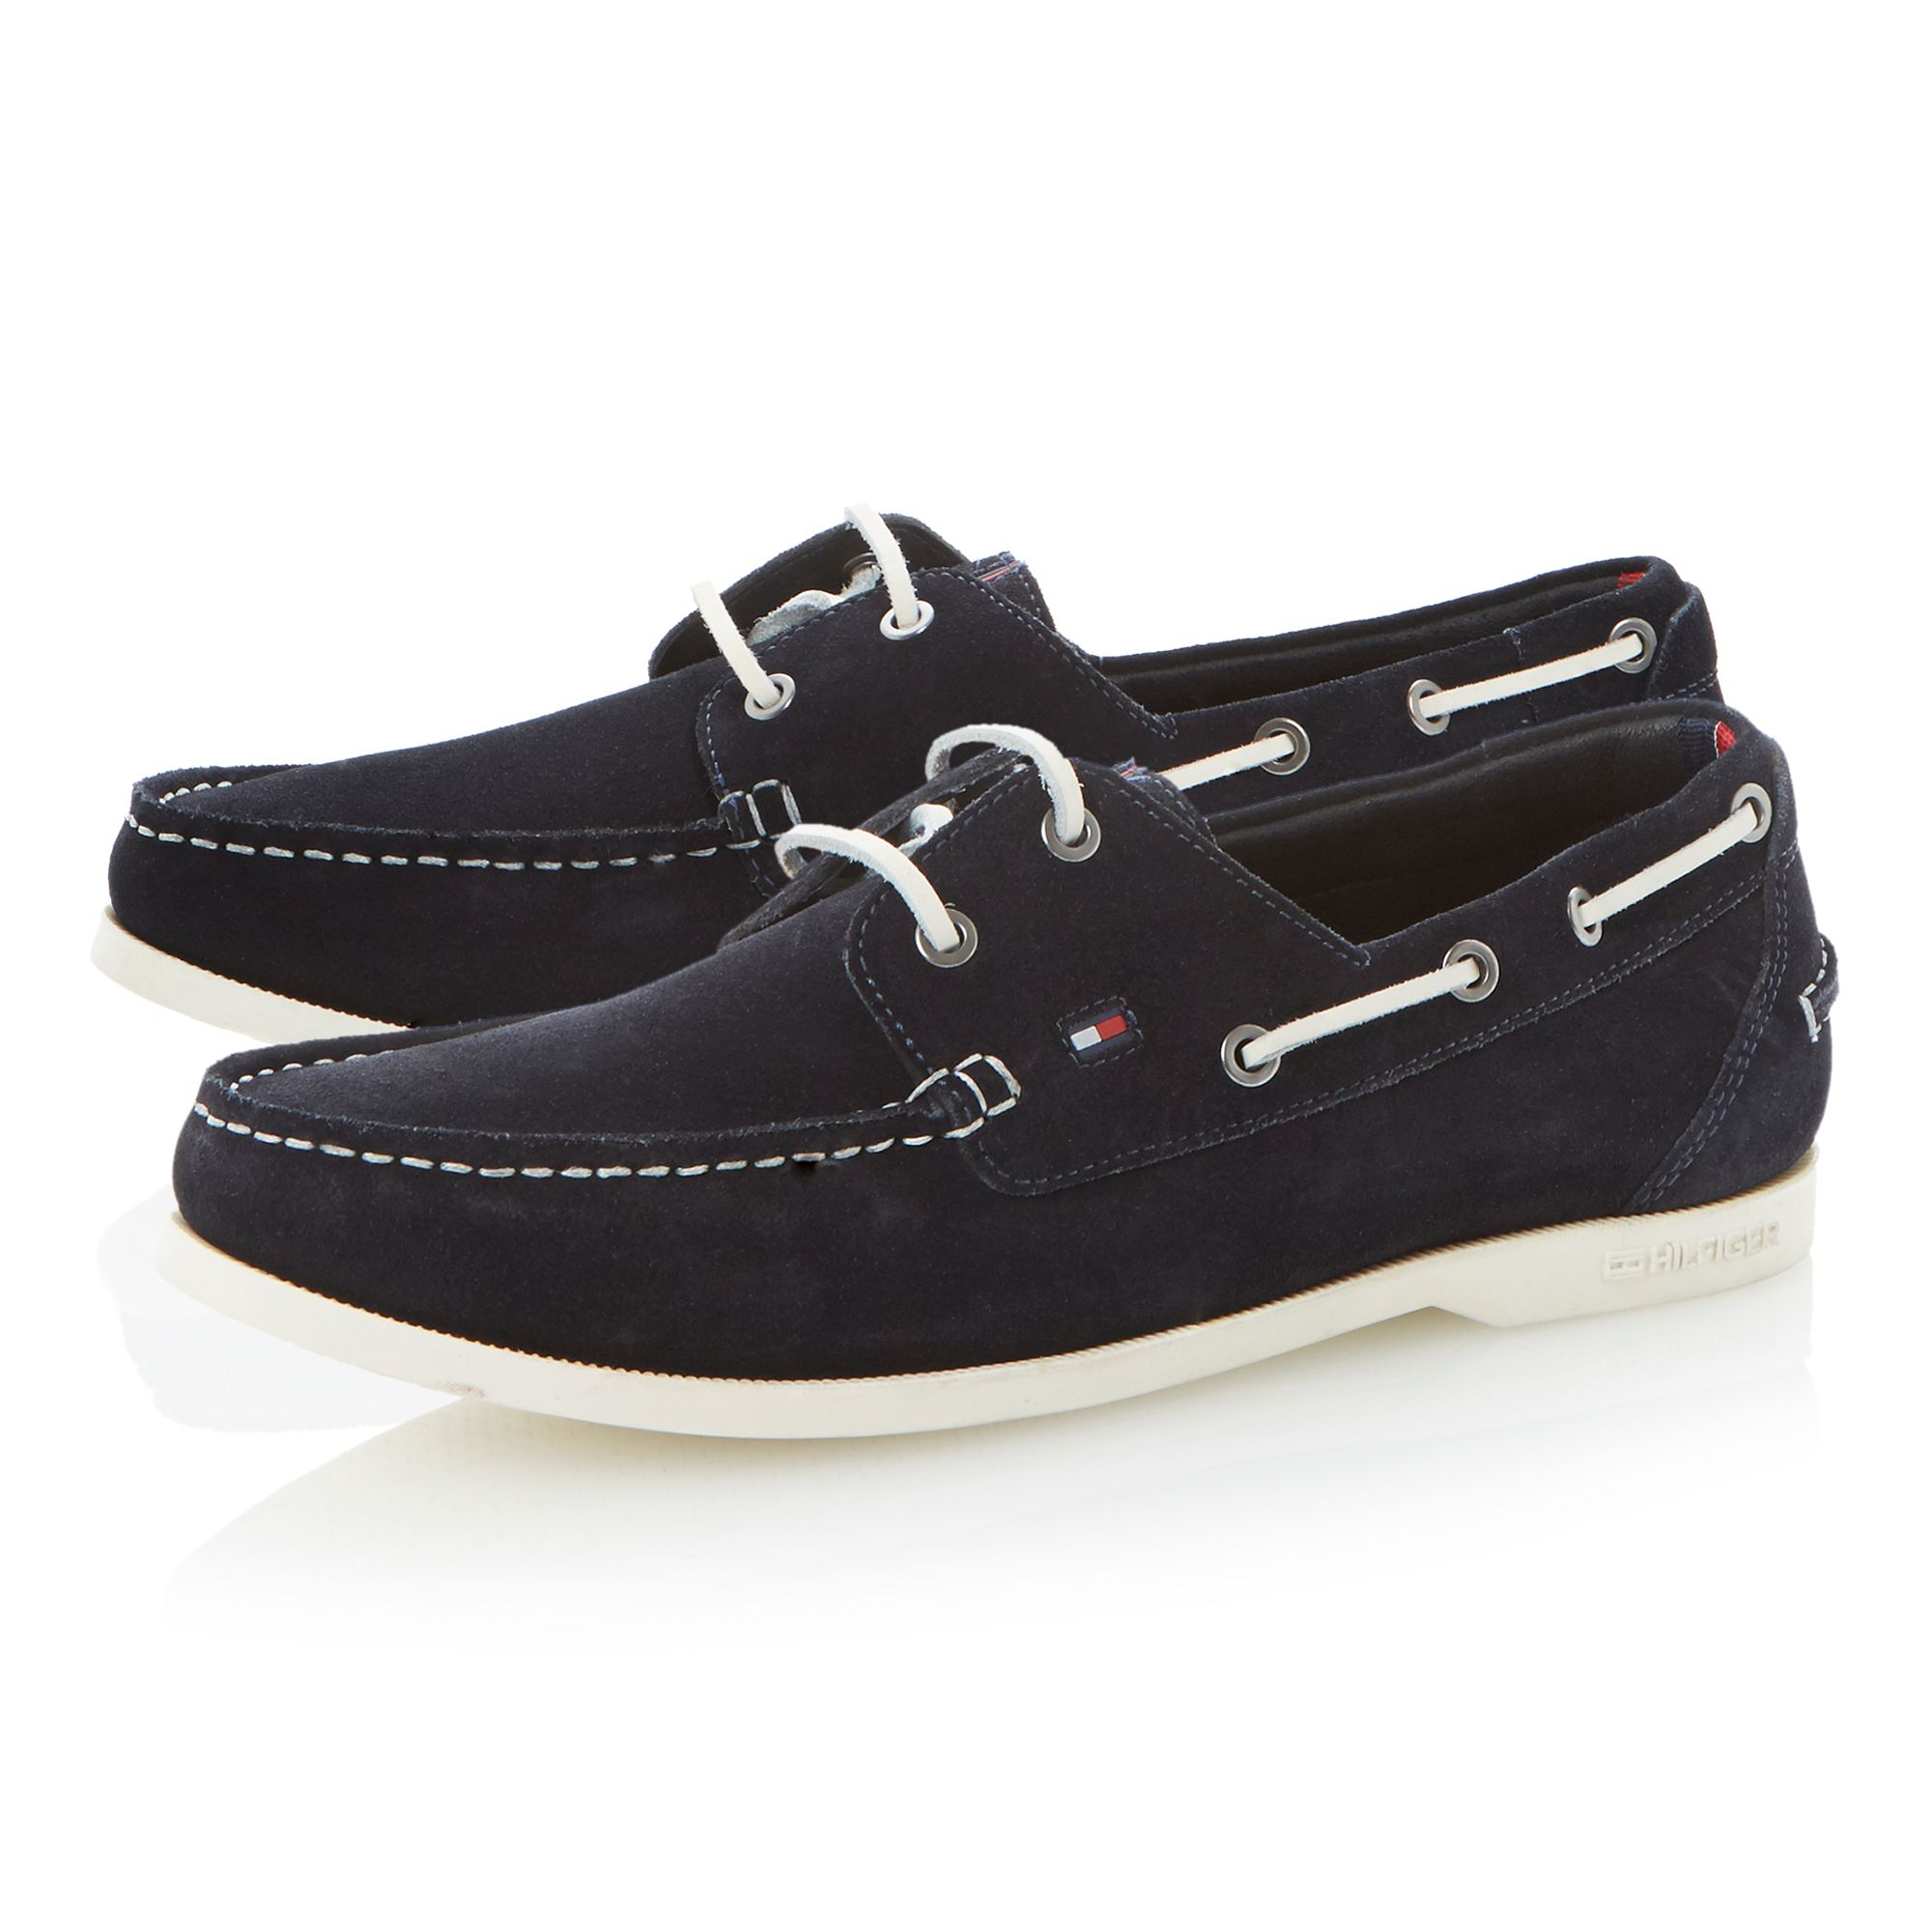 Tommy hilfiger Chino 9b Lace Up White Sole Boat Shoes in